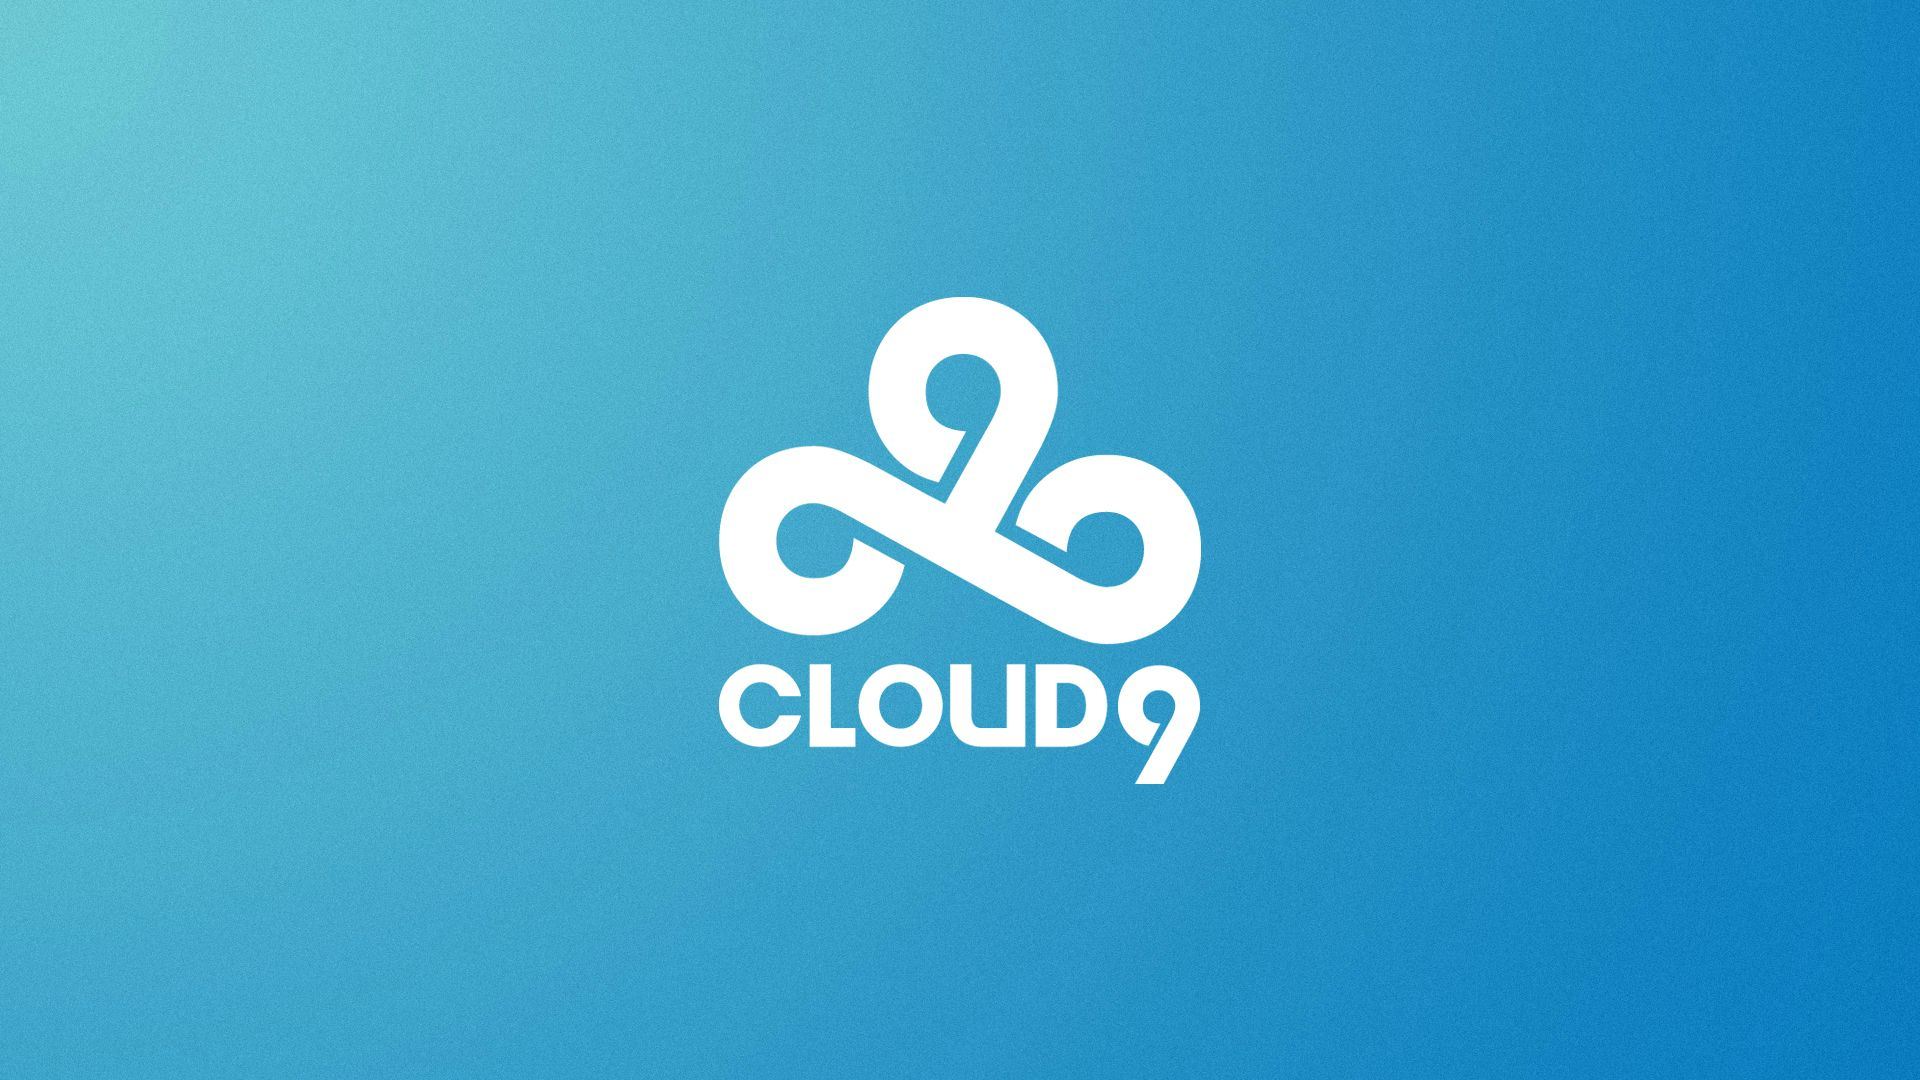 Hd wallpaper c9 pro - Cloud 9 Wallpaper Related Keywords Amp Suggestions Cloud 9